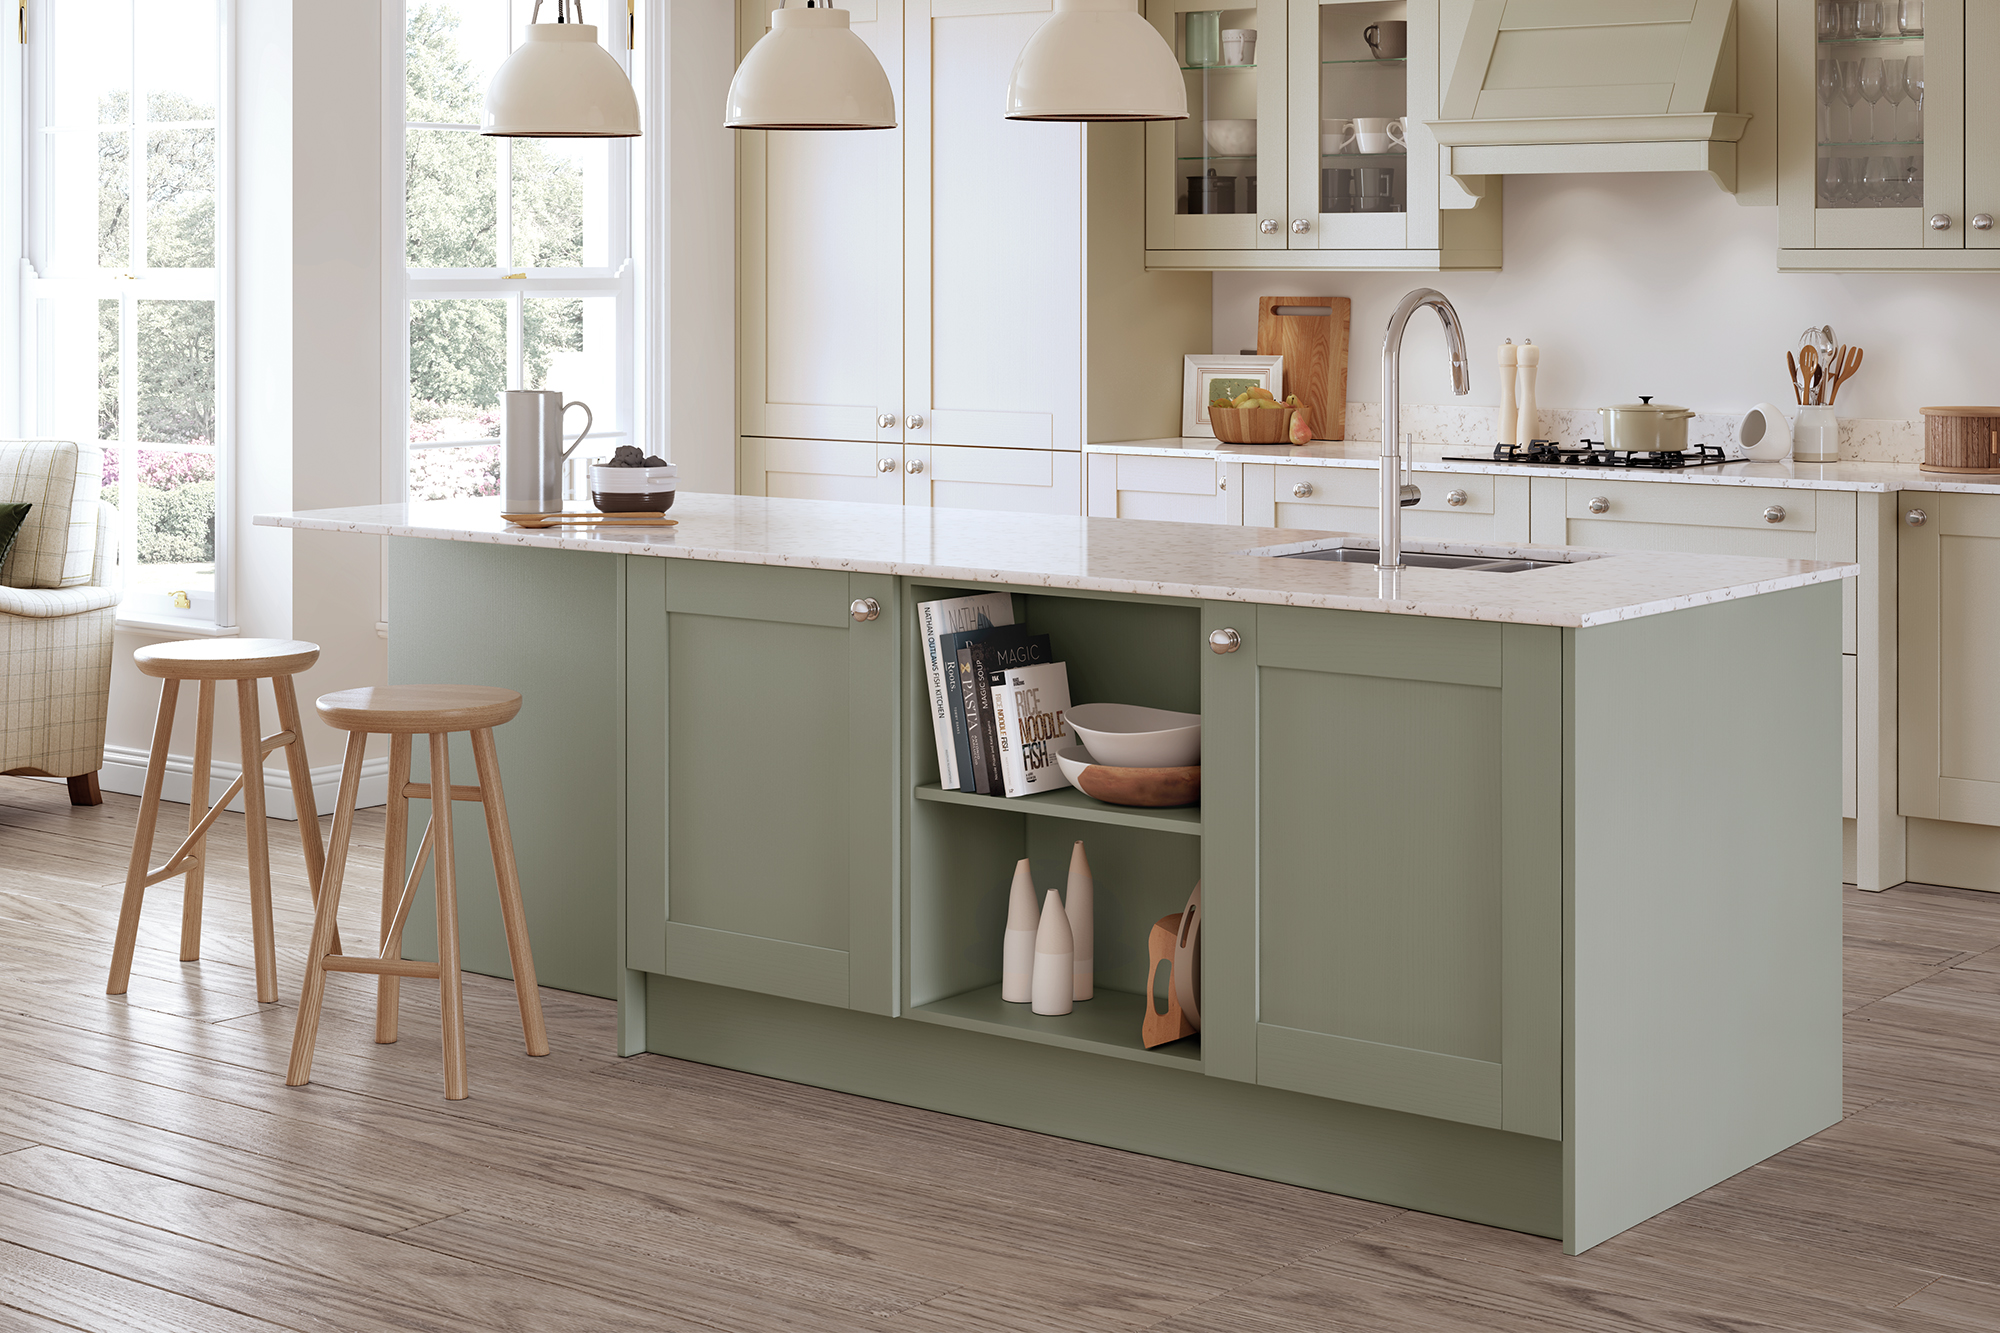 Madison Sage Green Painted Kitchen Doors Cheap Kitchen Units And Cabinets For Sale Online Kitchen Warehouse